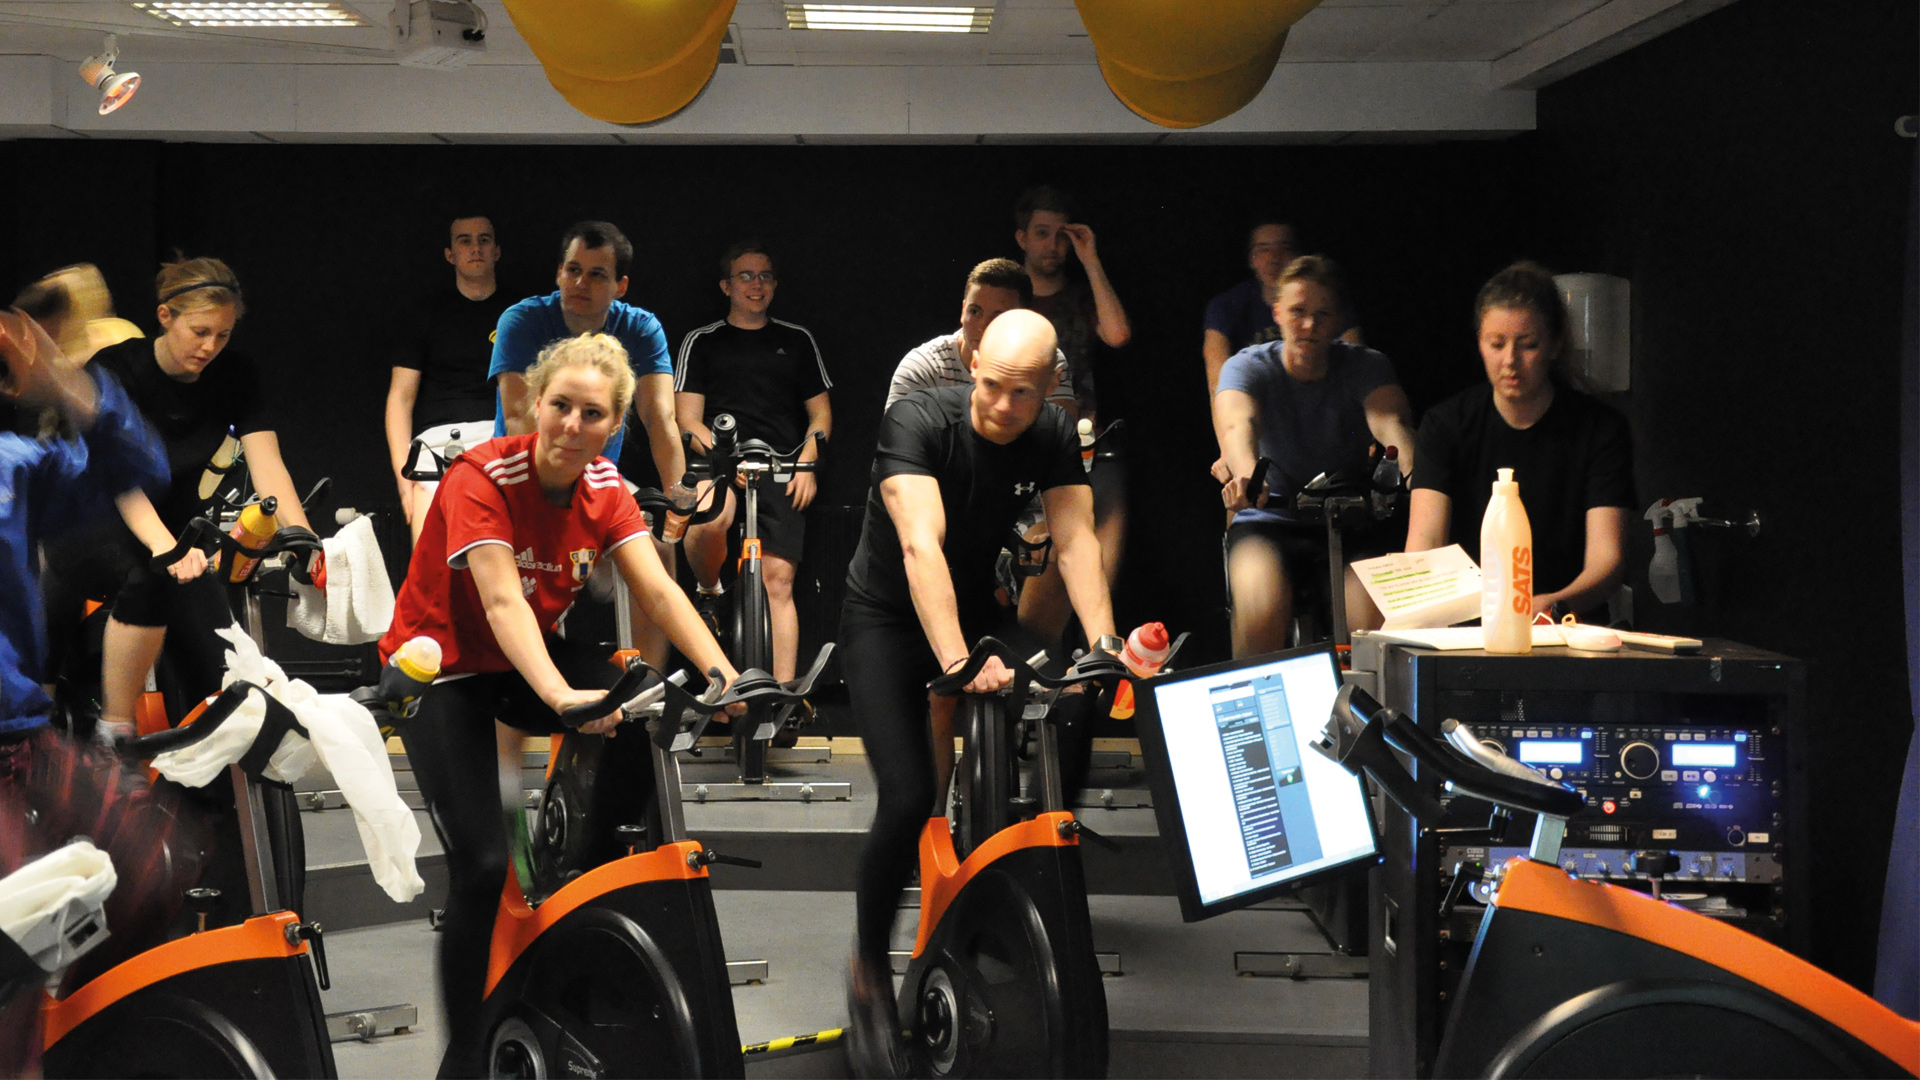 InTraining Spinning SATS (Photo: MusicPartner)